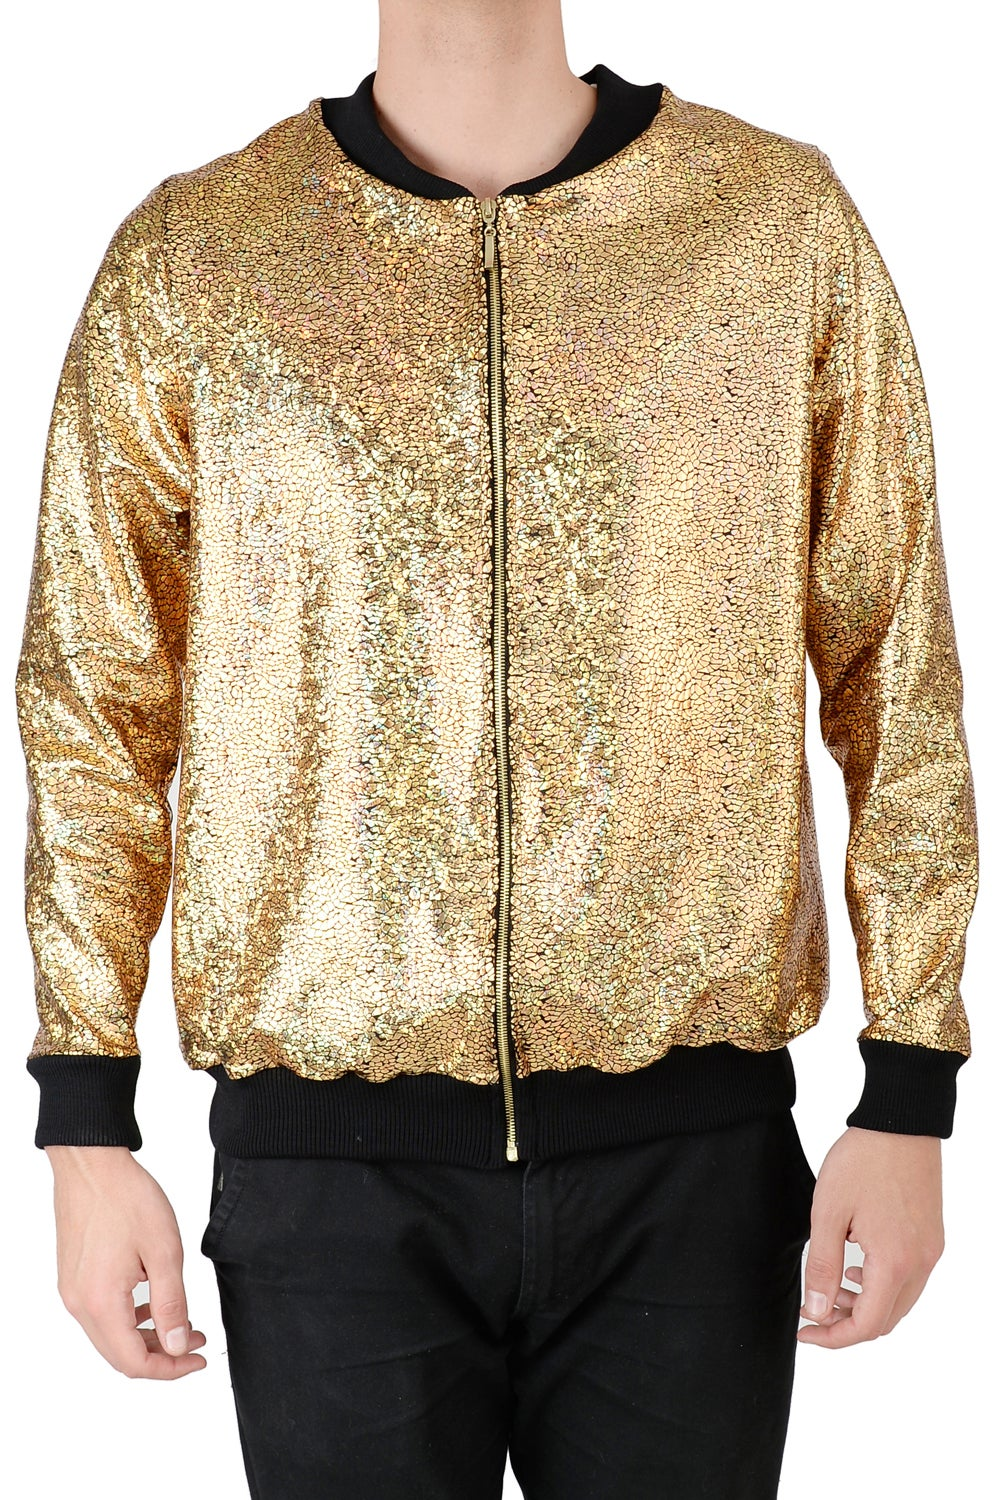 Image of Mens Gold Disco Bomber Jacket